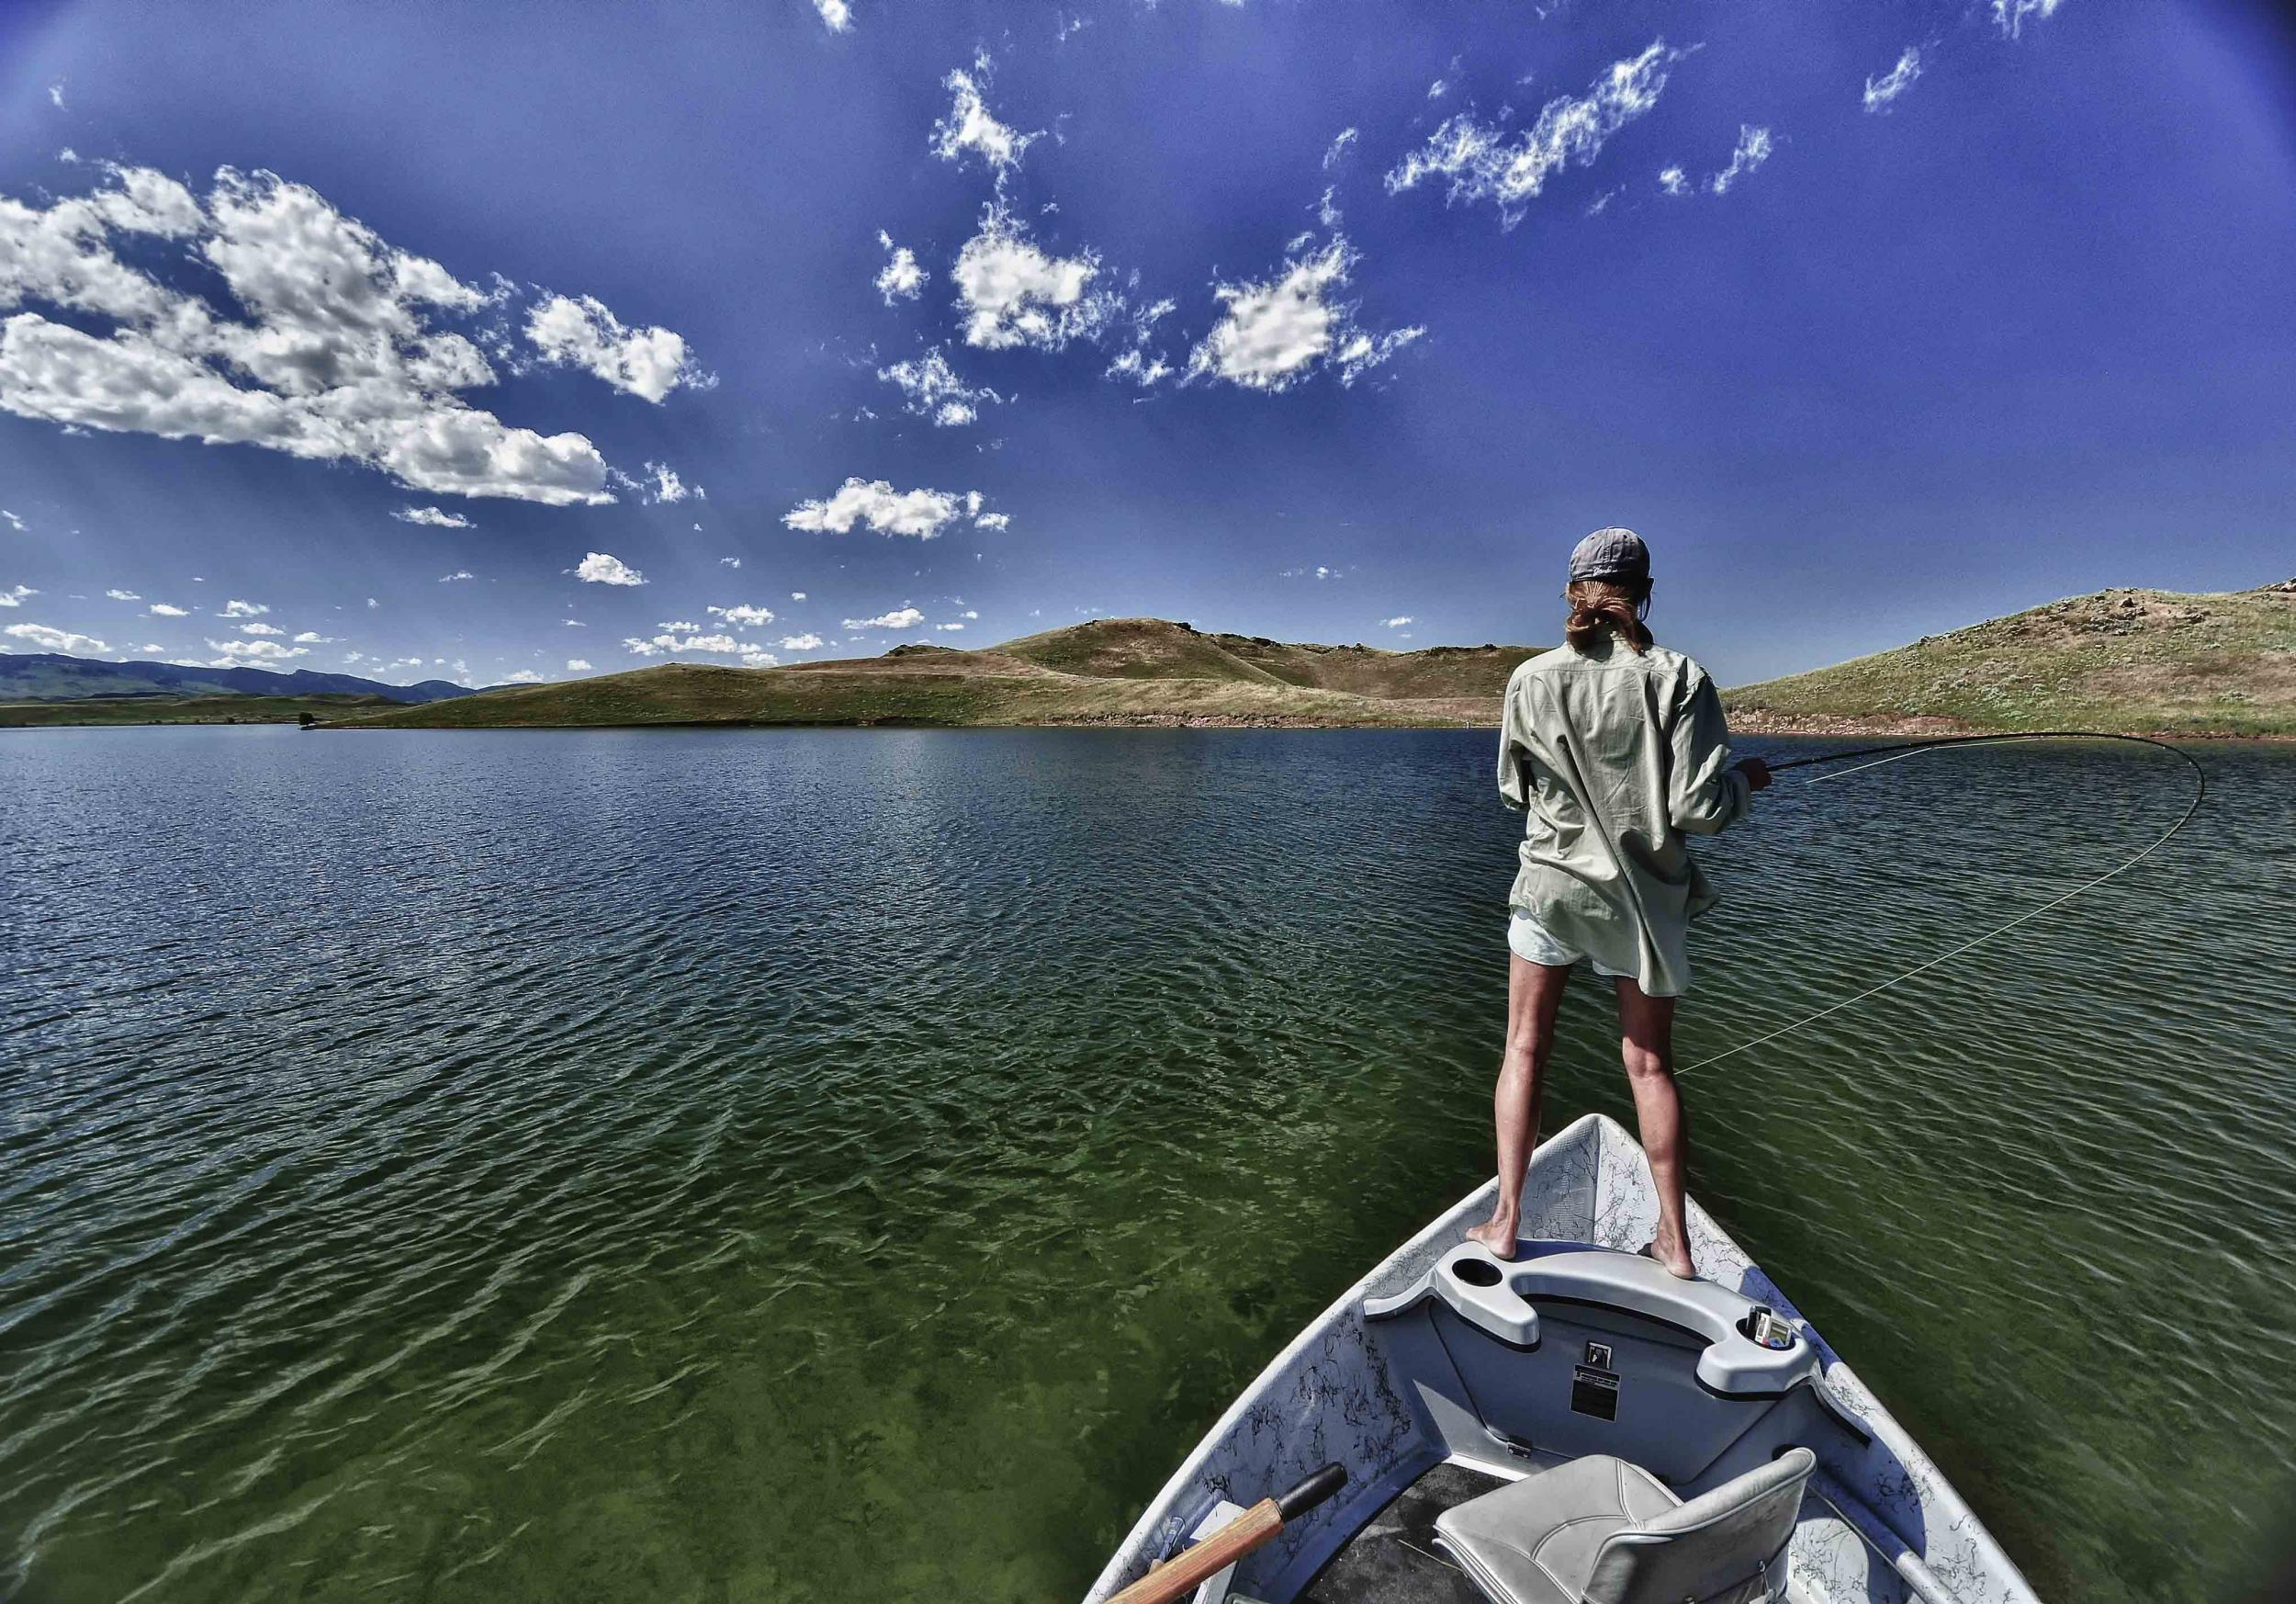 Fly Fishing Guide Wyoming Fly Fishing Guide Montana